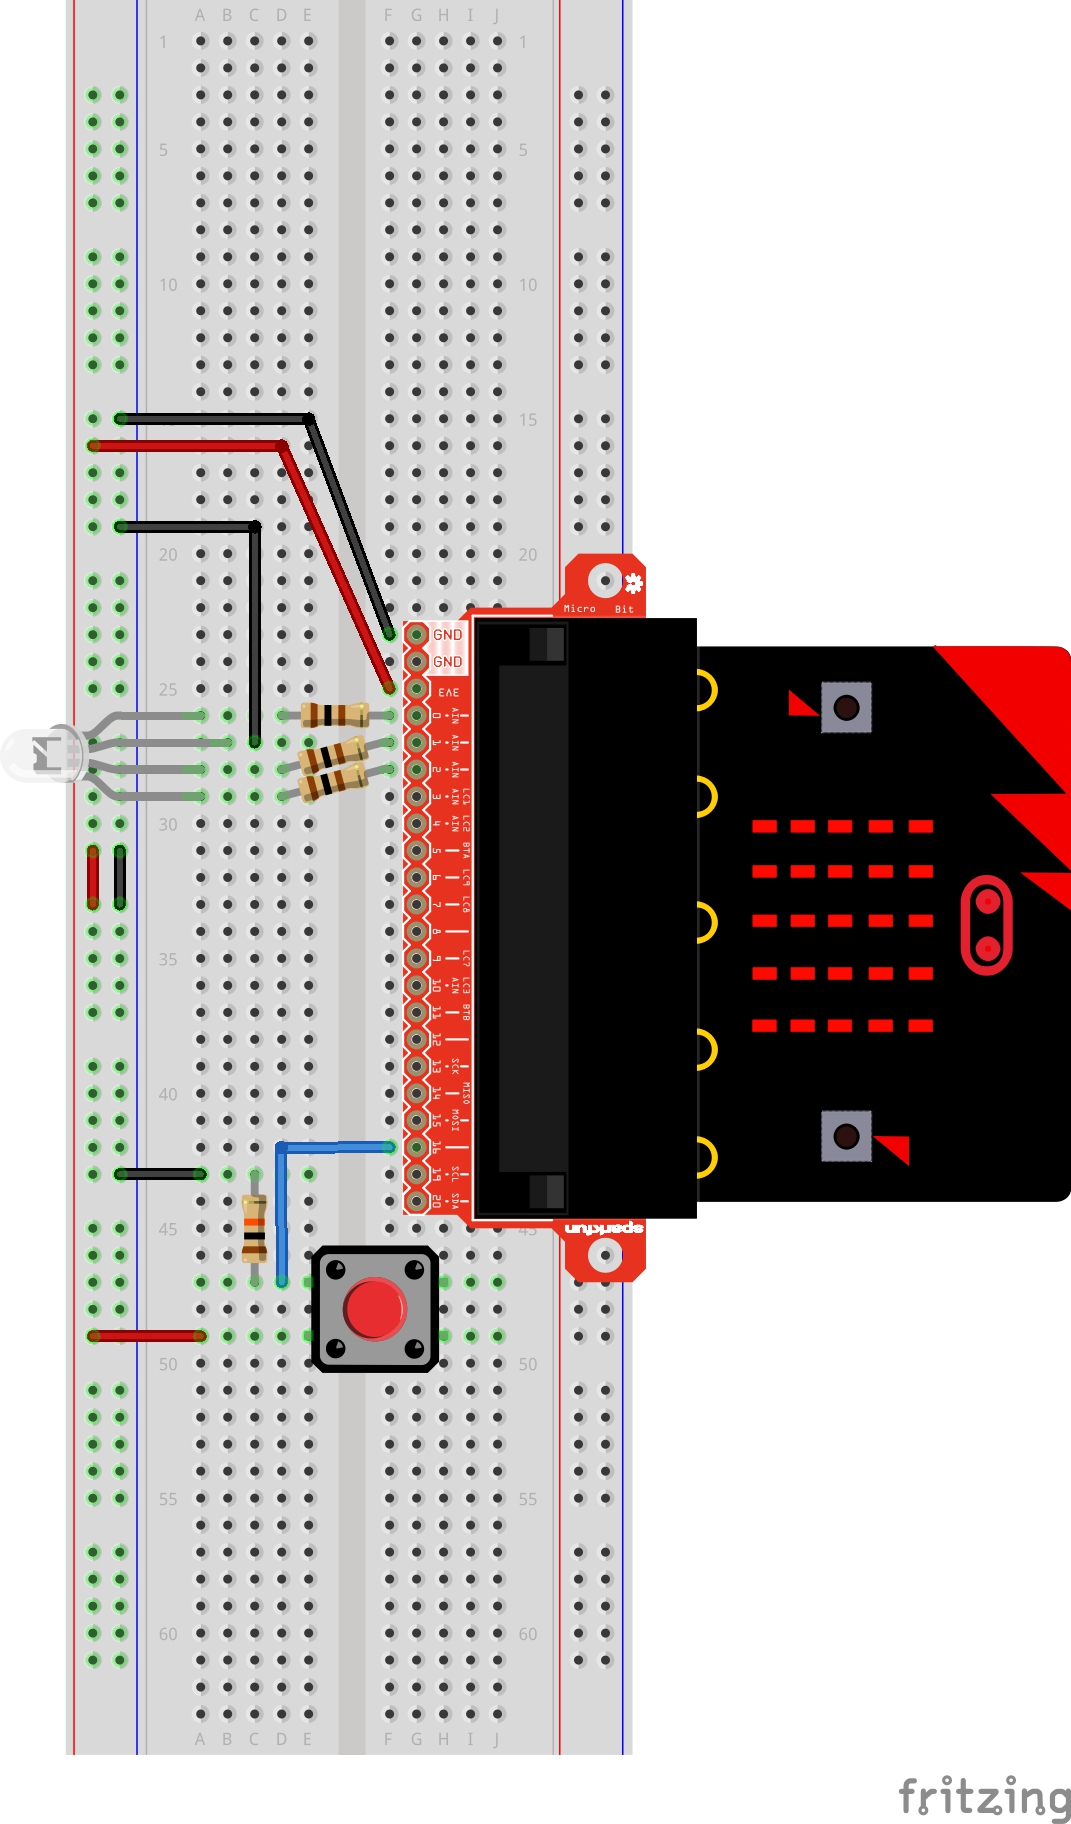 Sparkfun Inventors Kit For Microbit Experiment Guide Learn Micro Wiring Diagram Fritzing Sik Exp 6